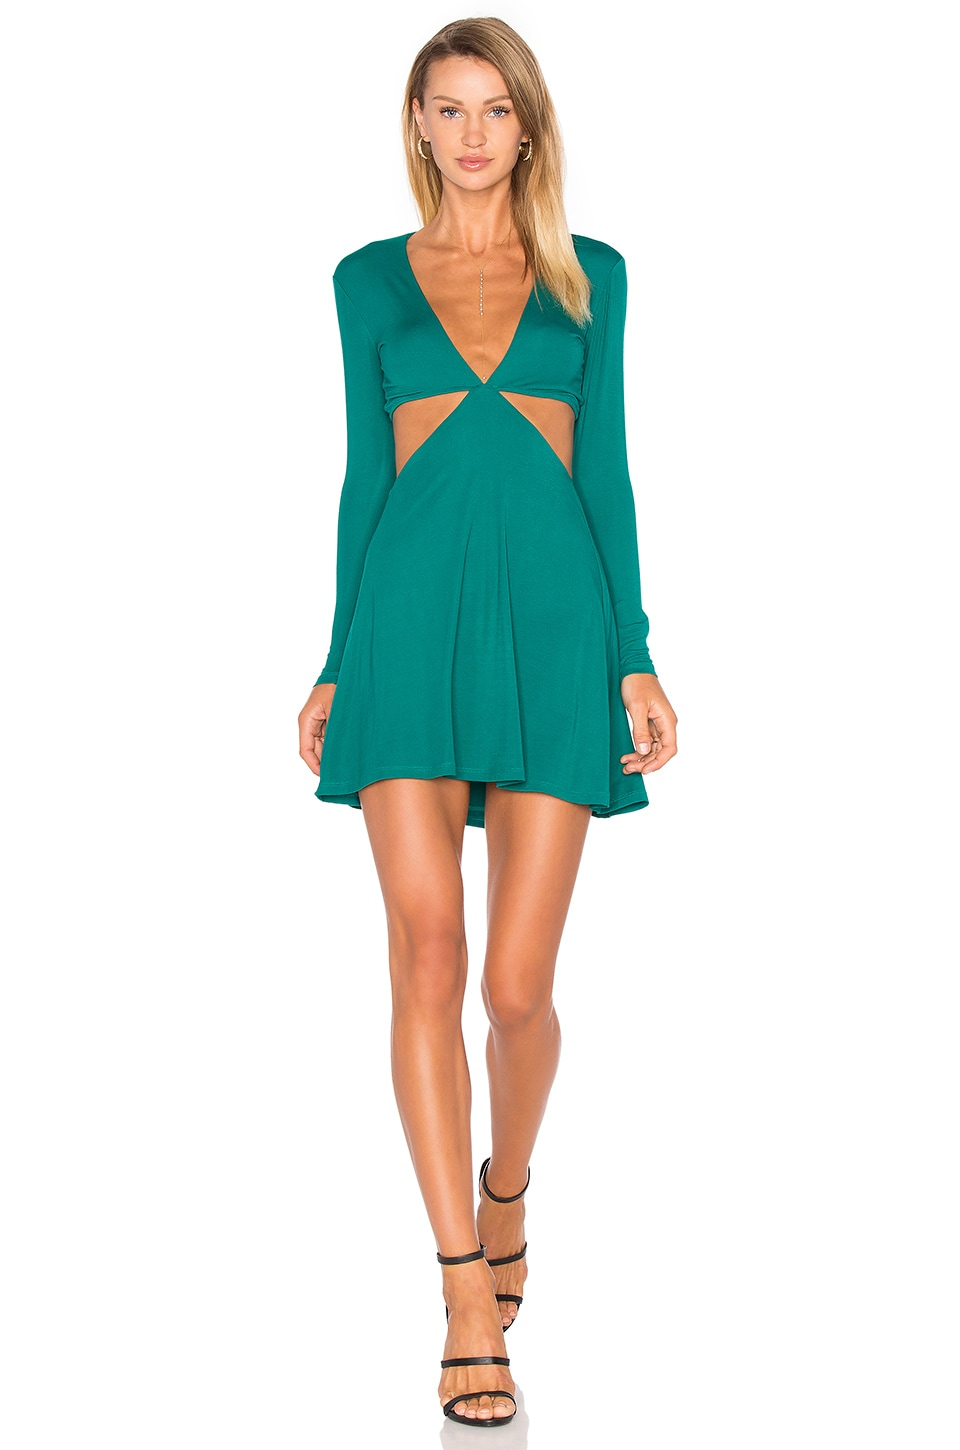 x Naven Twins Infatuation Fit & Flare by NBD